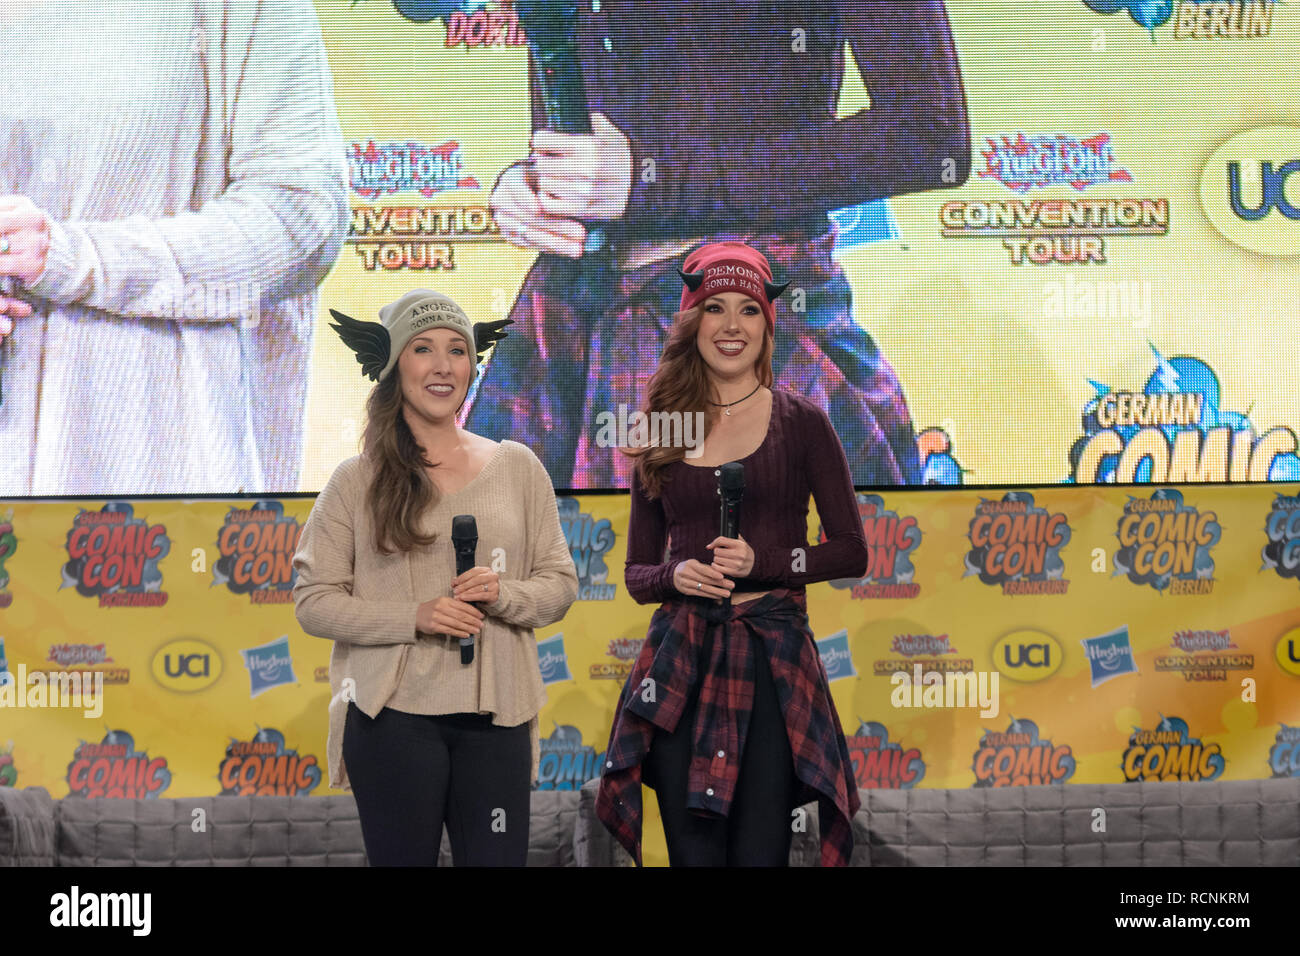 DORTMUND, GERMANY - December 1st 2018: The Hillywood Show at German Comic Con Dortmund, a two day fan convention - Stock Image